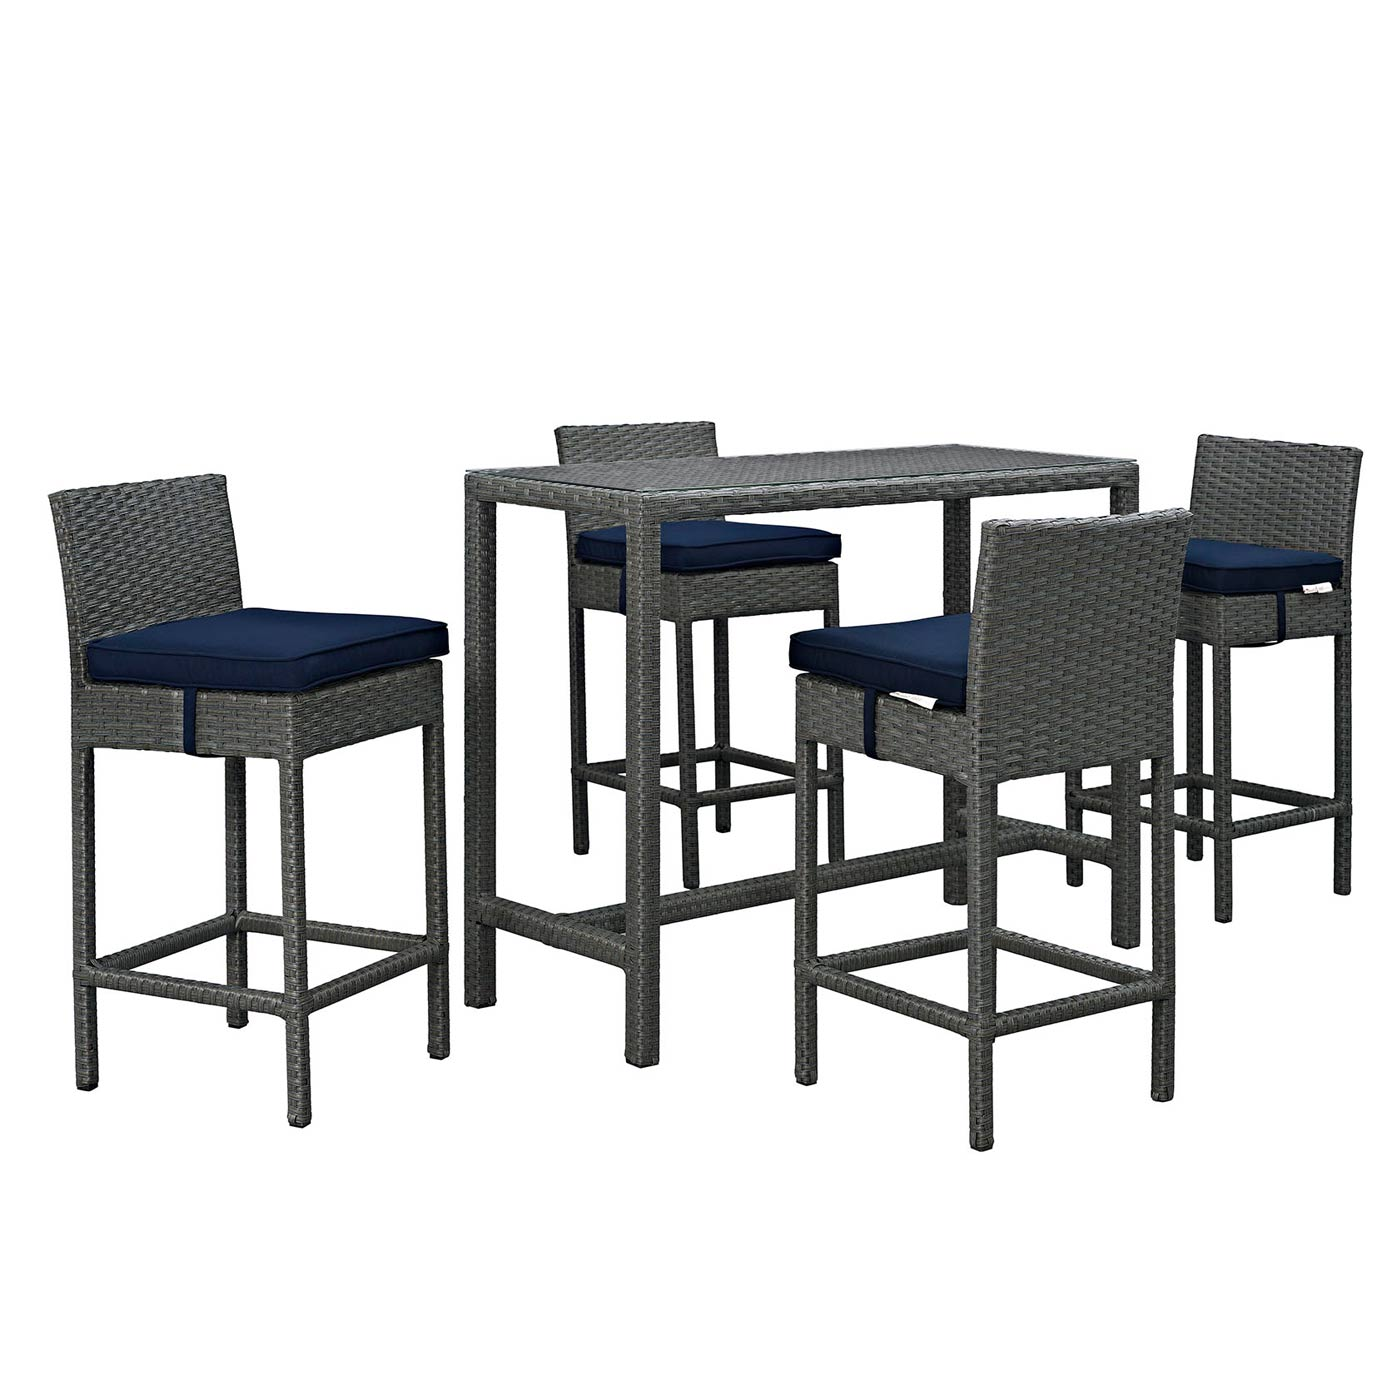 modway sojourn 5 outdoor patio bar height dining set